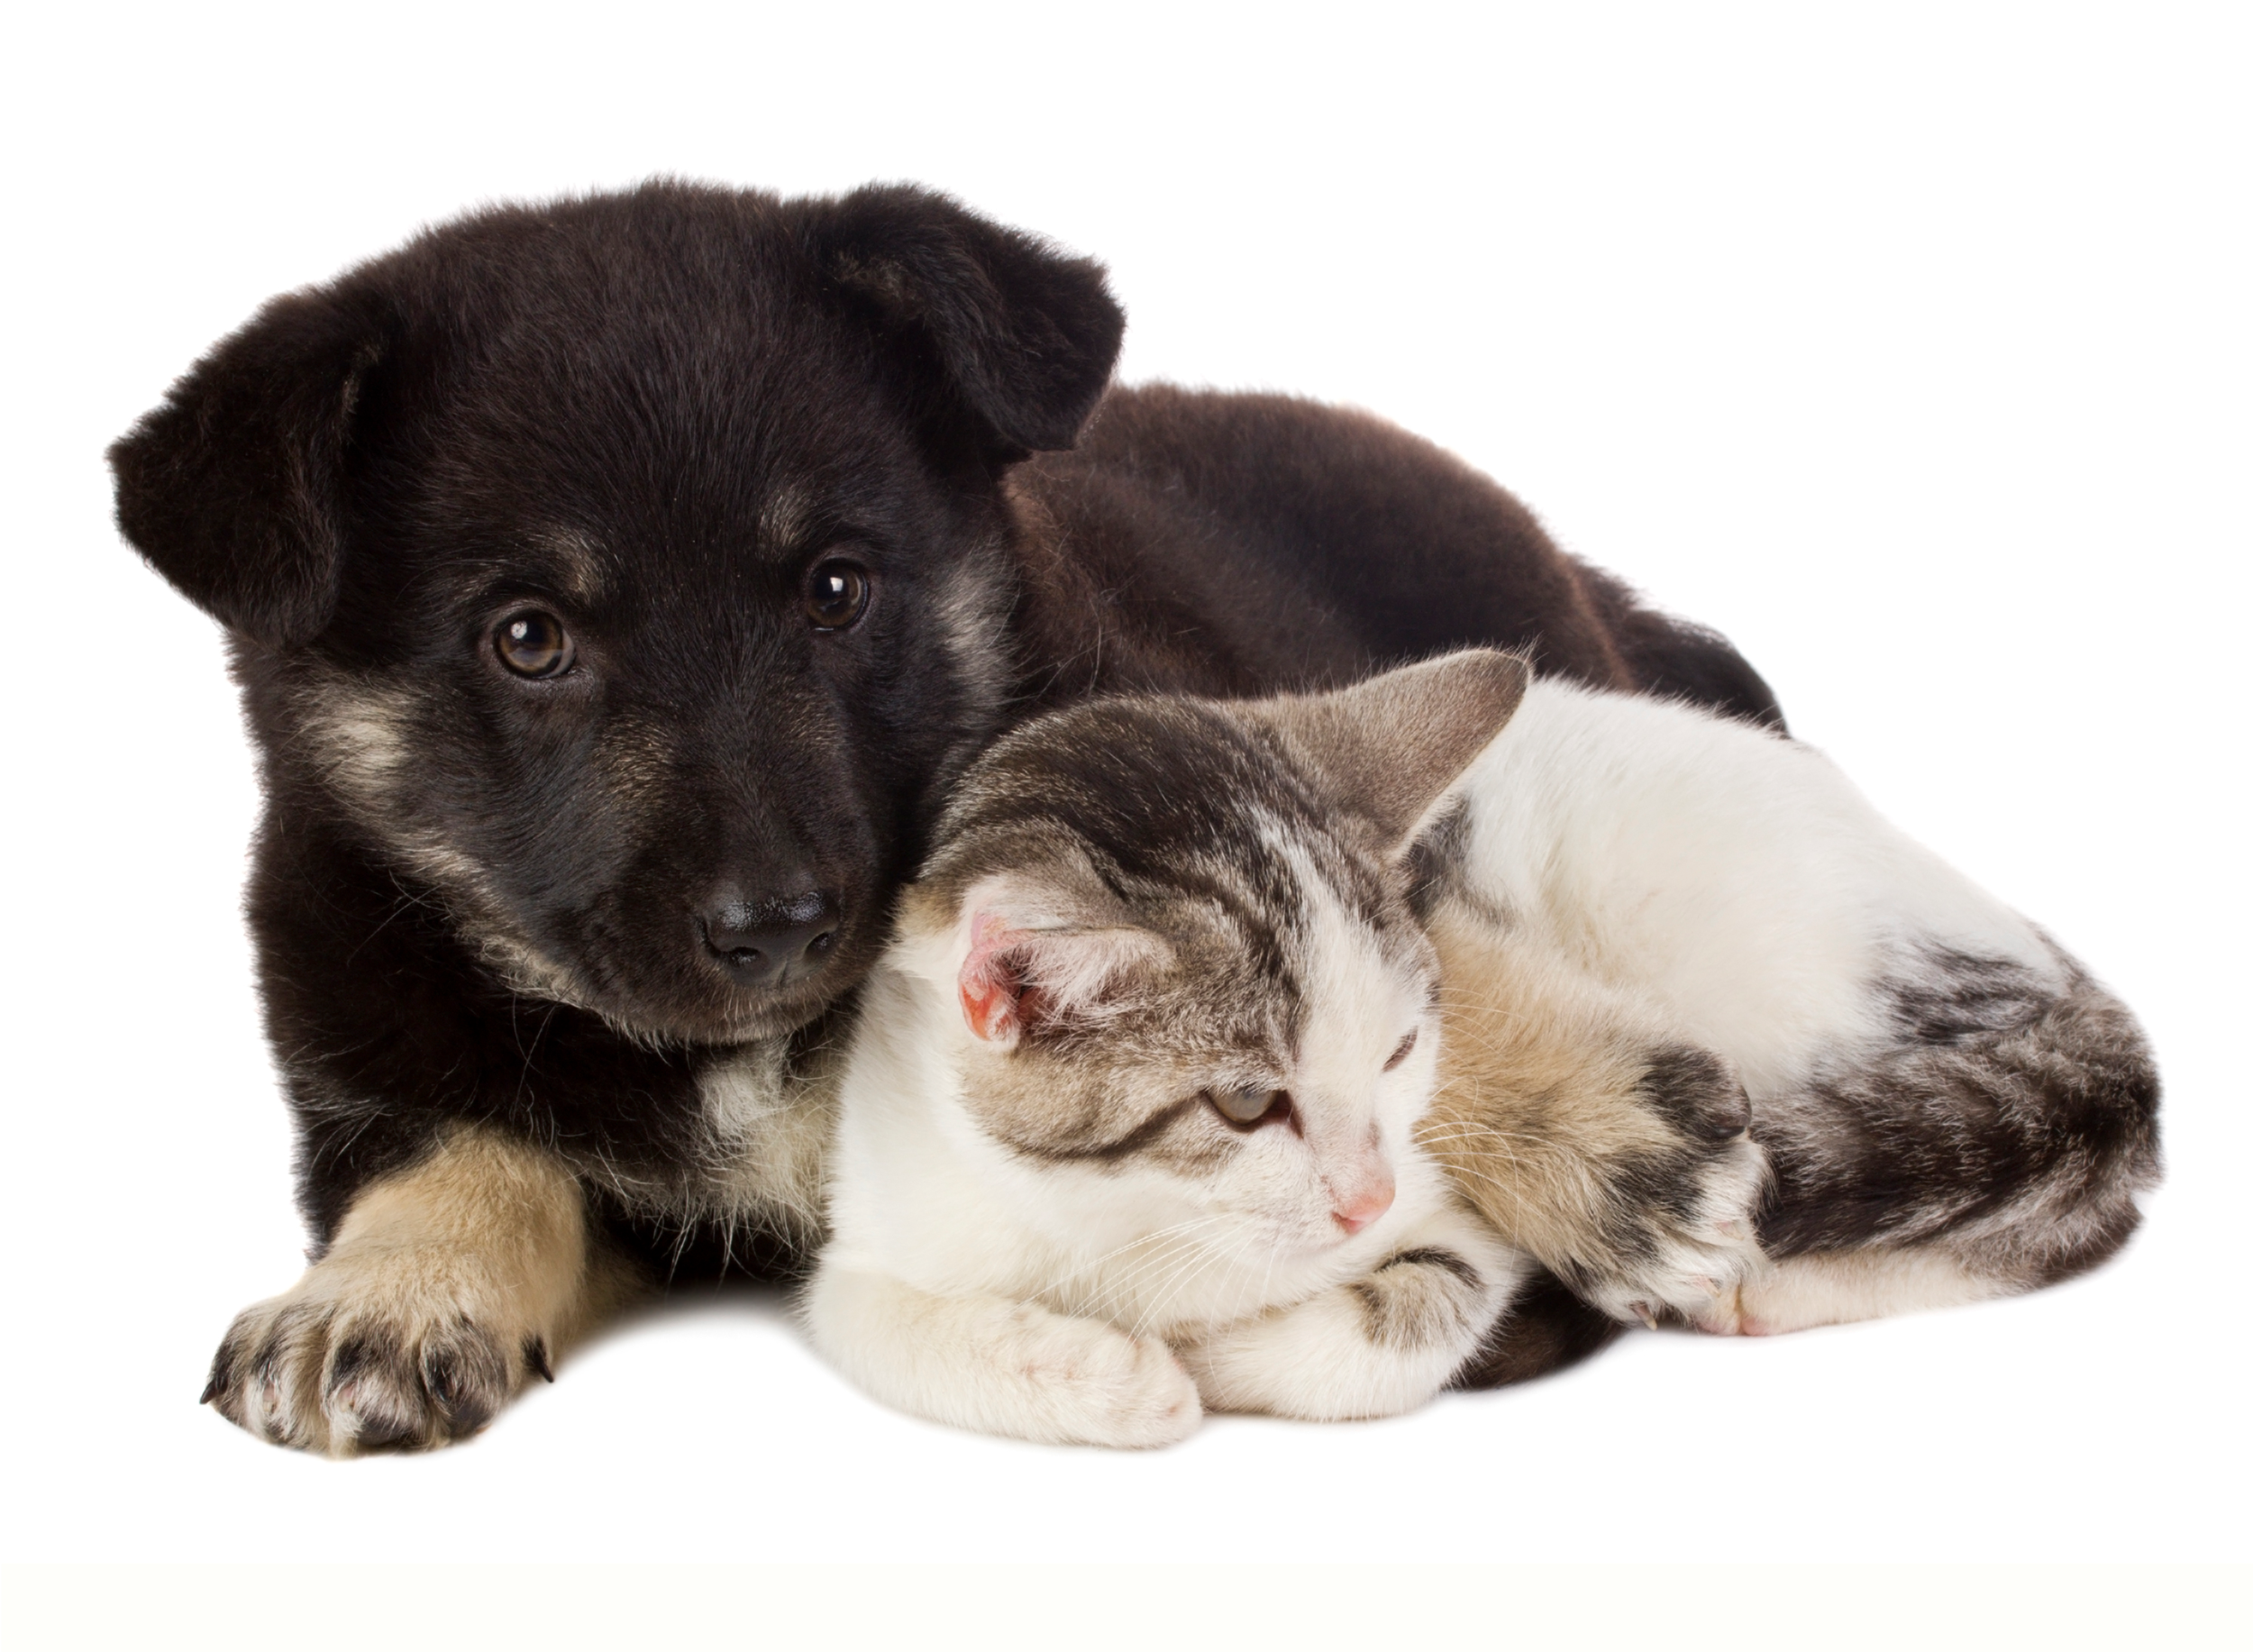 Low-cost spay / neuter services for cats, kittens, dogs and puppies help address the pet overpopulation problemand prevents new generations of homeless pets.